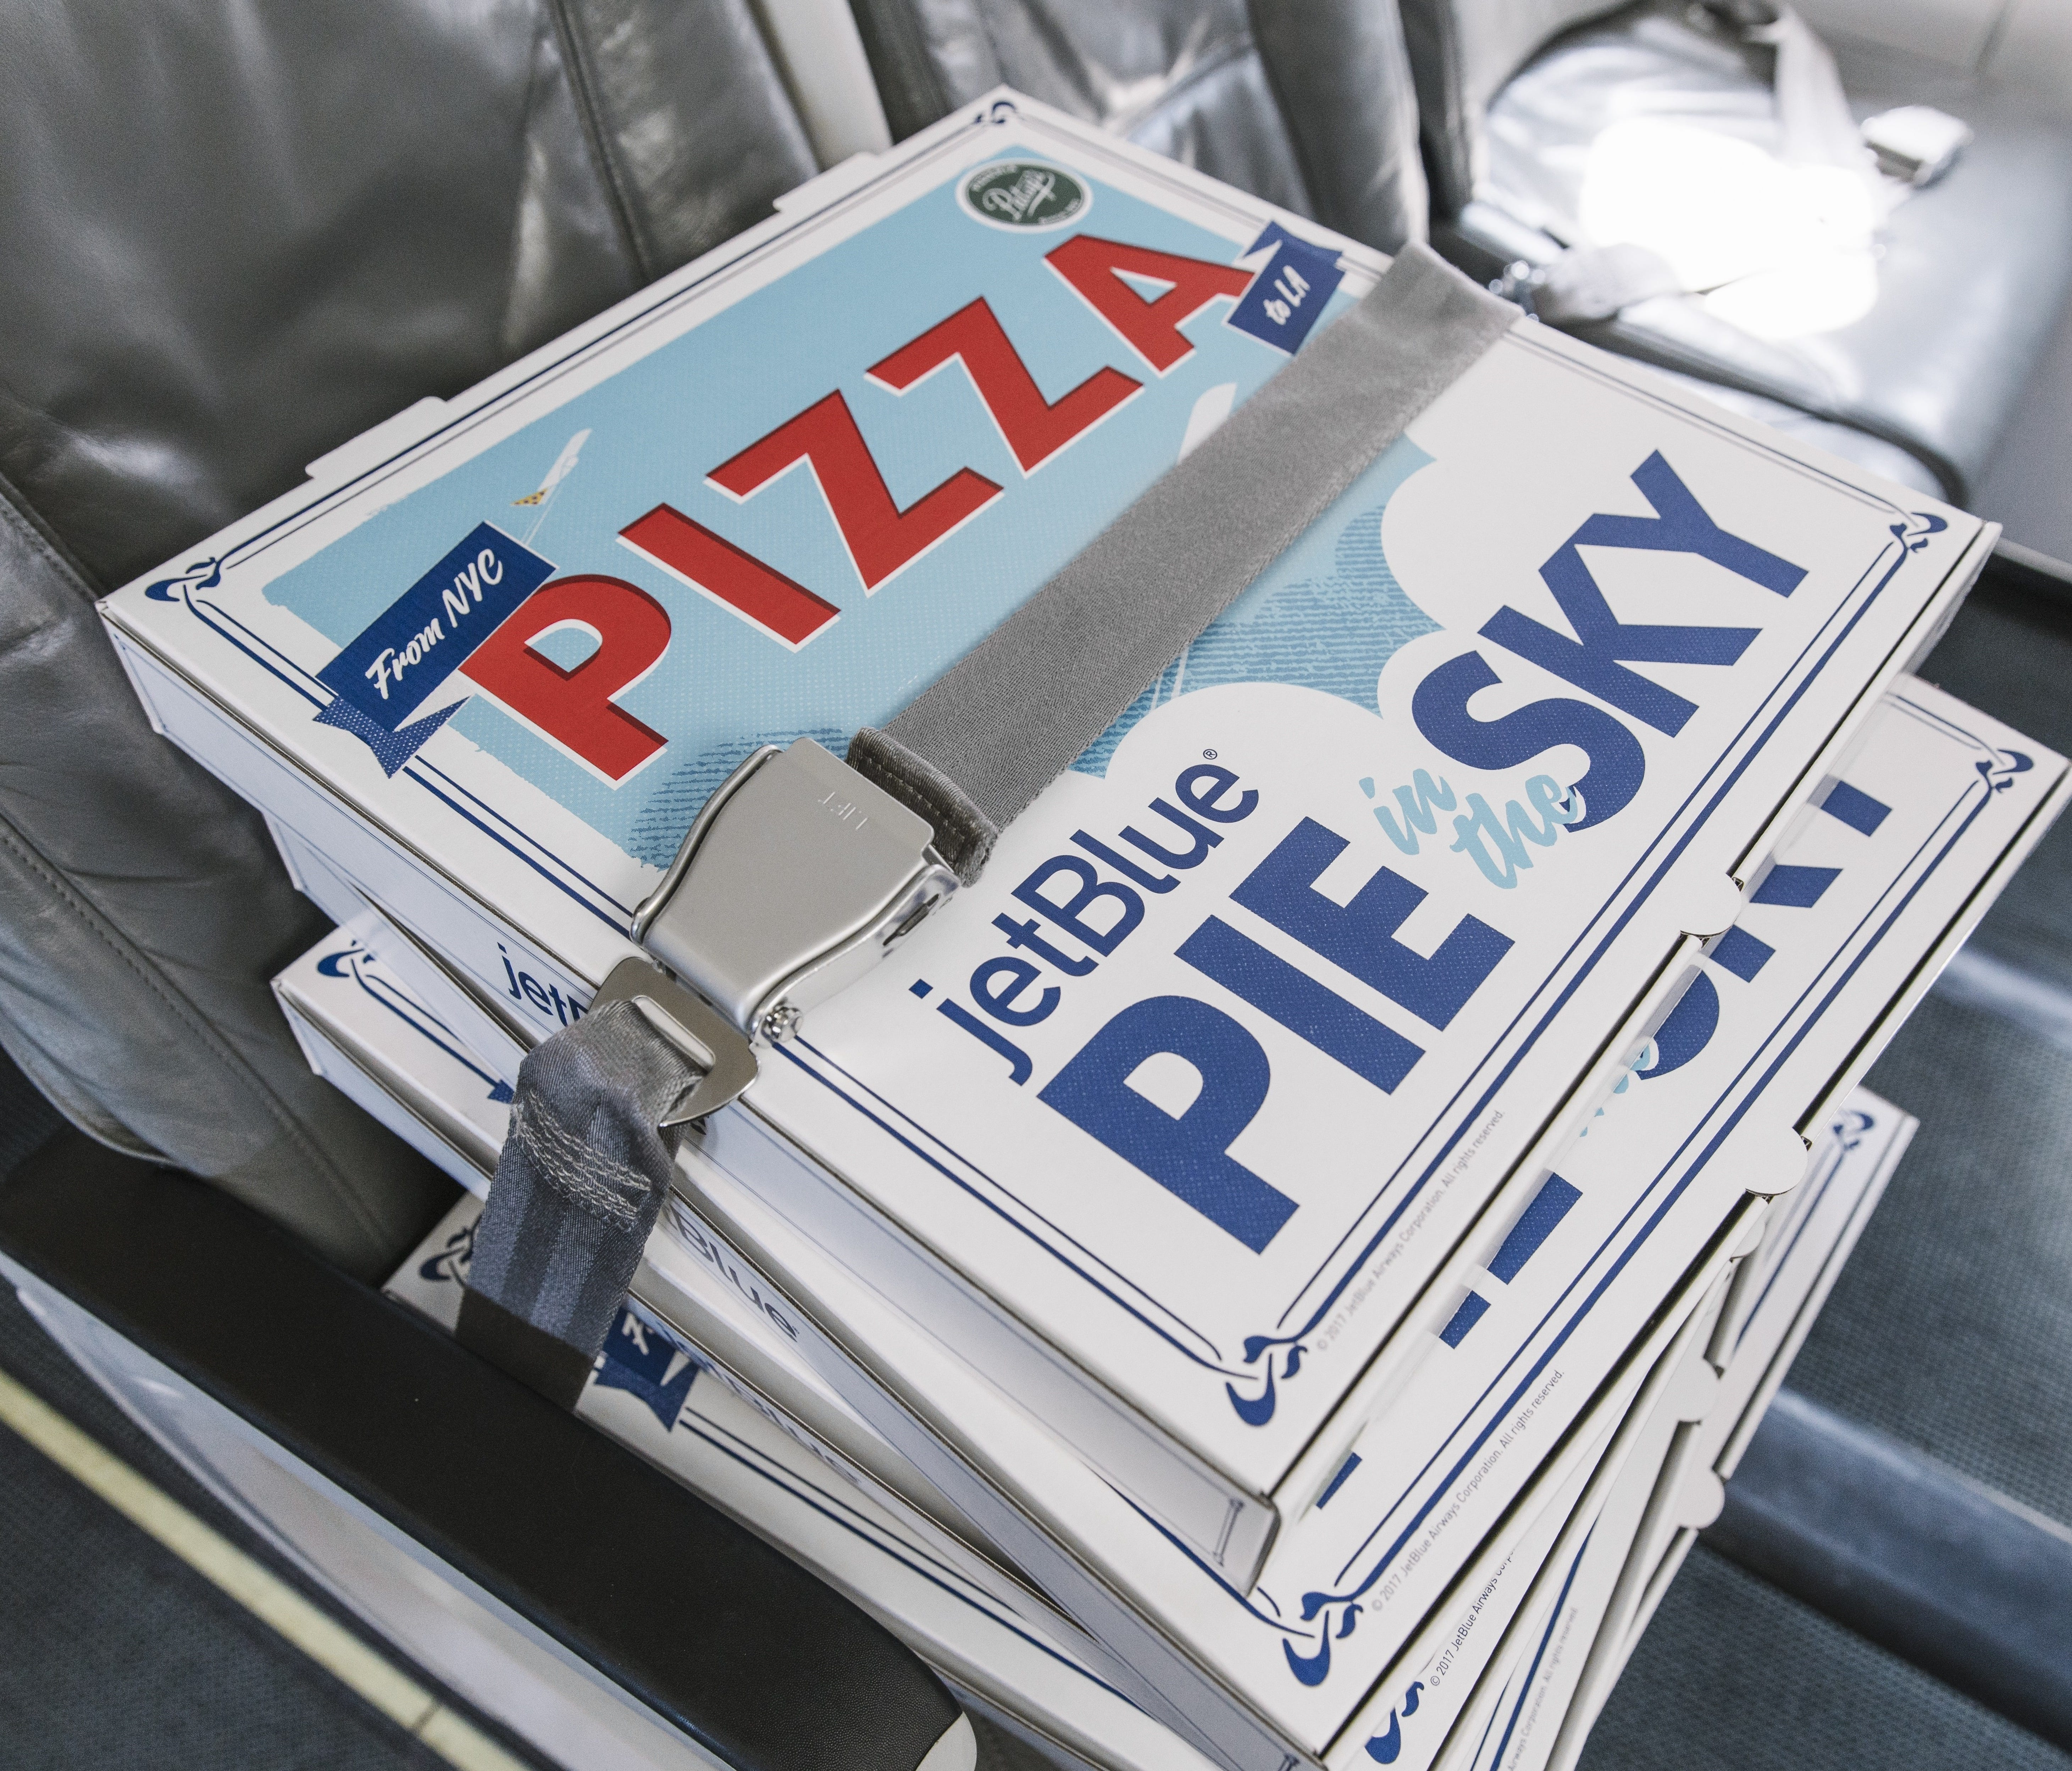 As part of a promotion, JetBlue plans to deliver hot, fresh pizzas from New York to customers in Los Angeles.